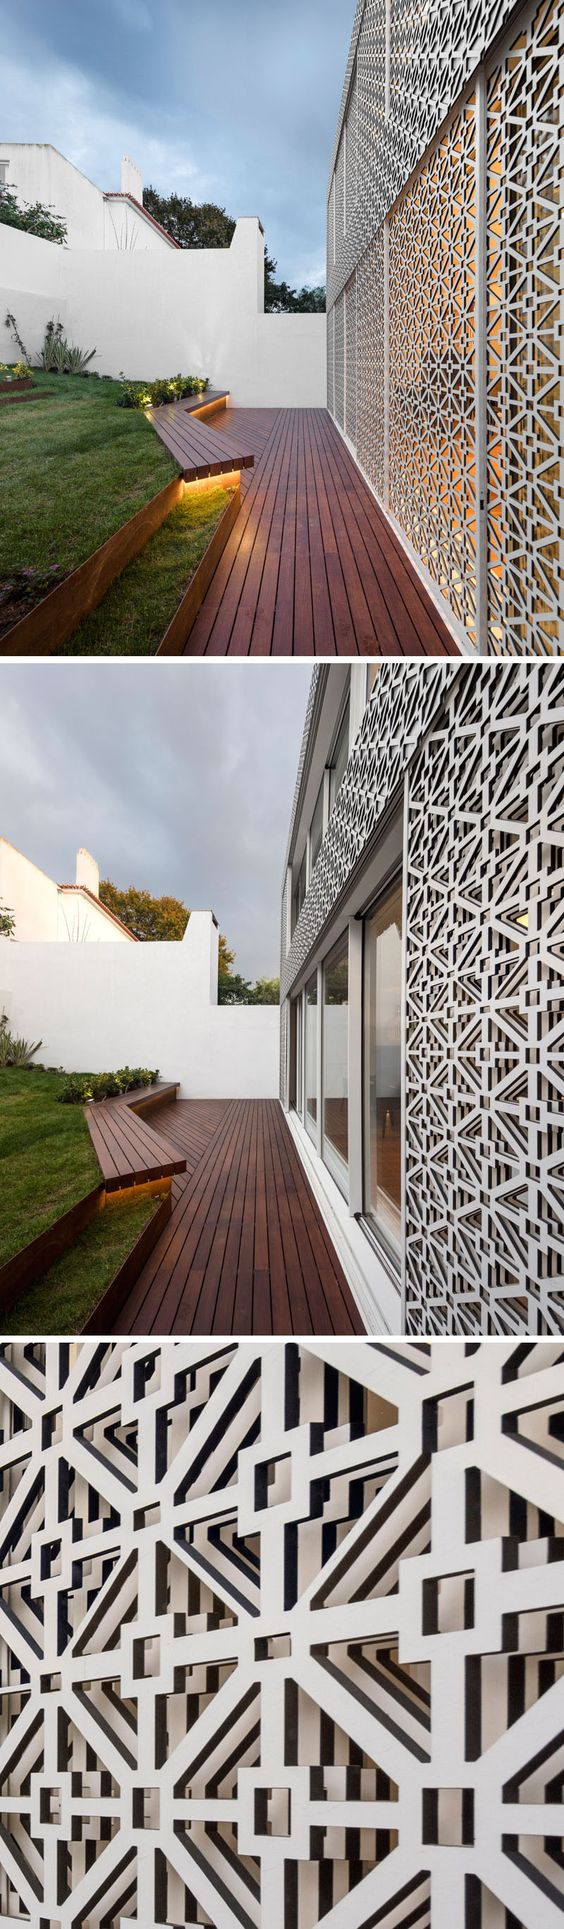 Install Laser-cut Decorative Screens at Home